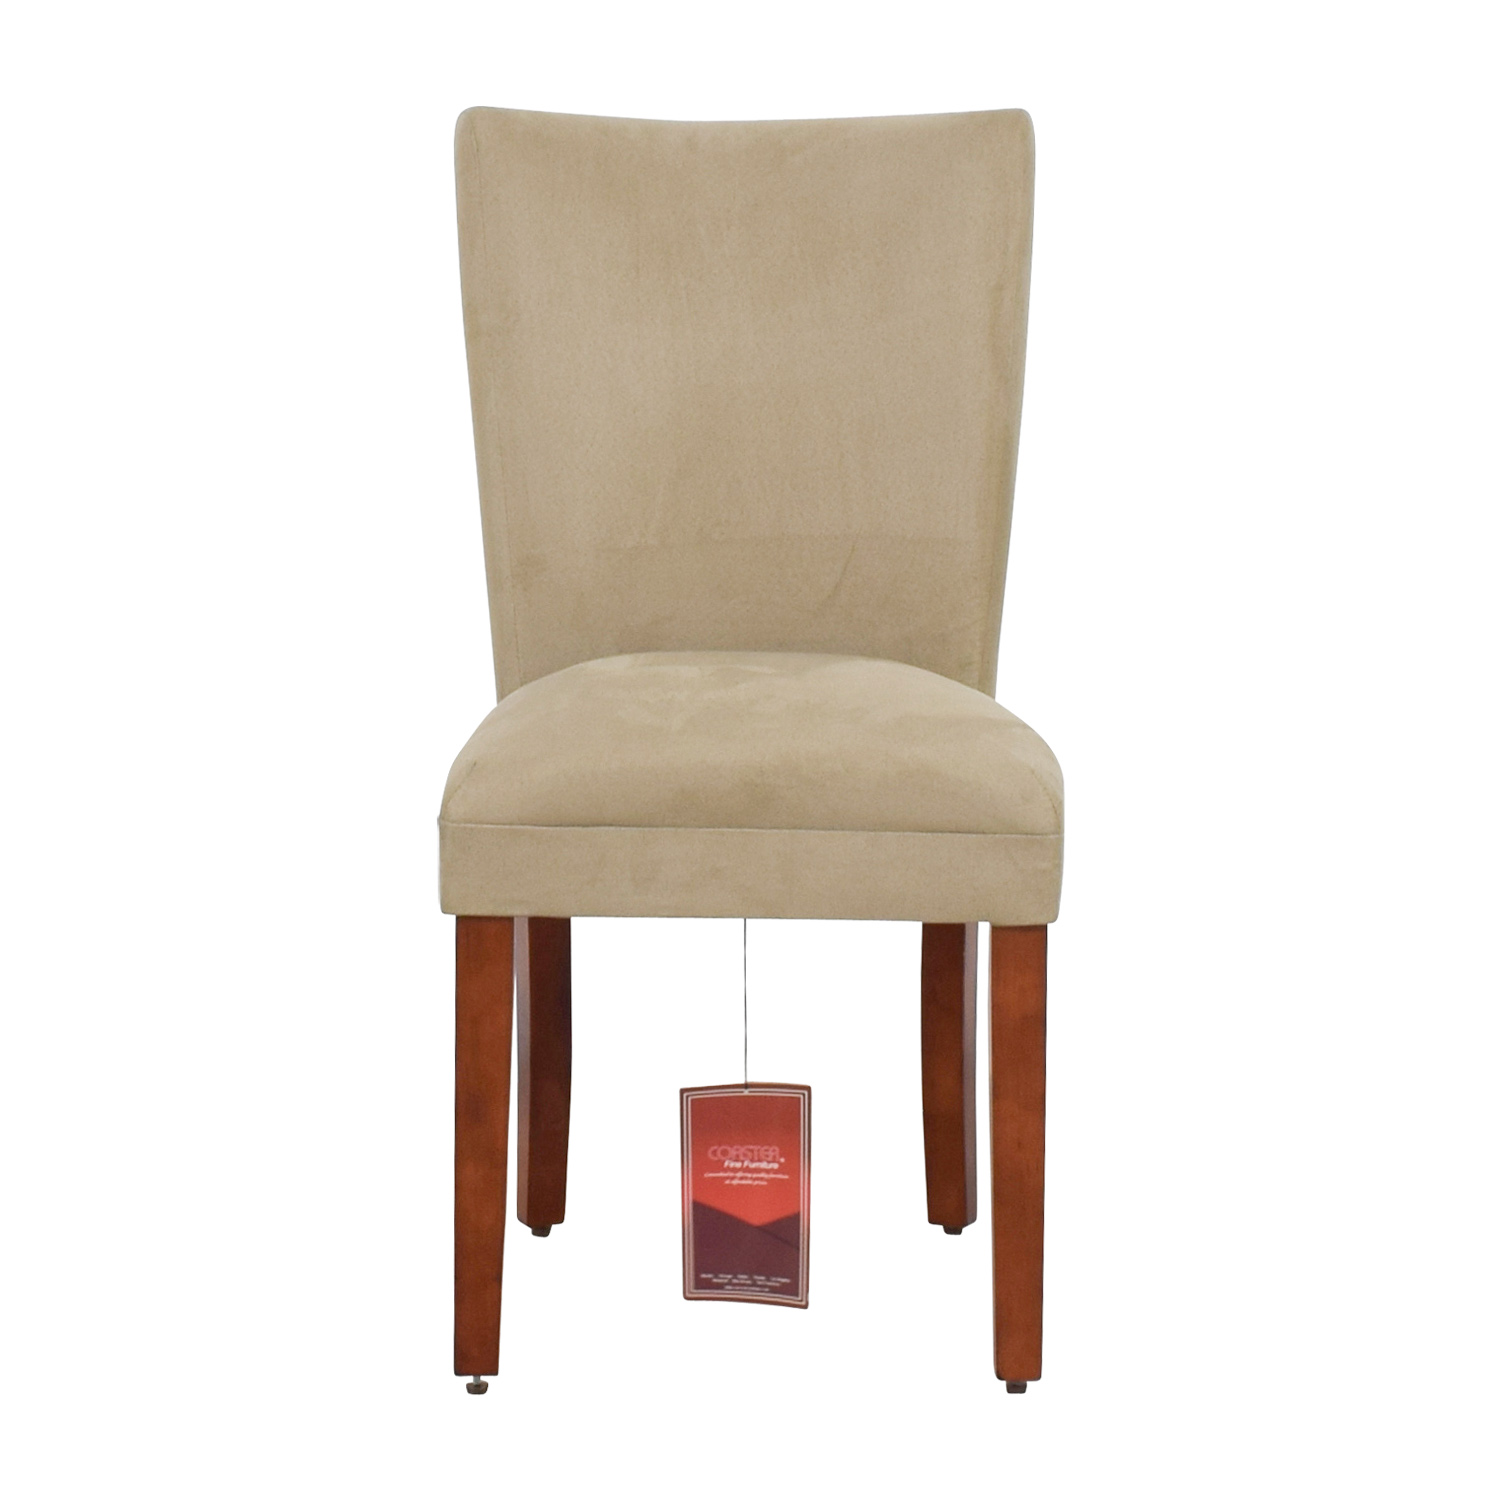 shop Coaster High Back Parsons Chair in Taupe Microfiber Fabric Coaster Dining Chairs